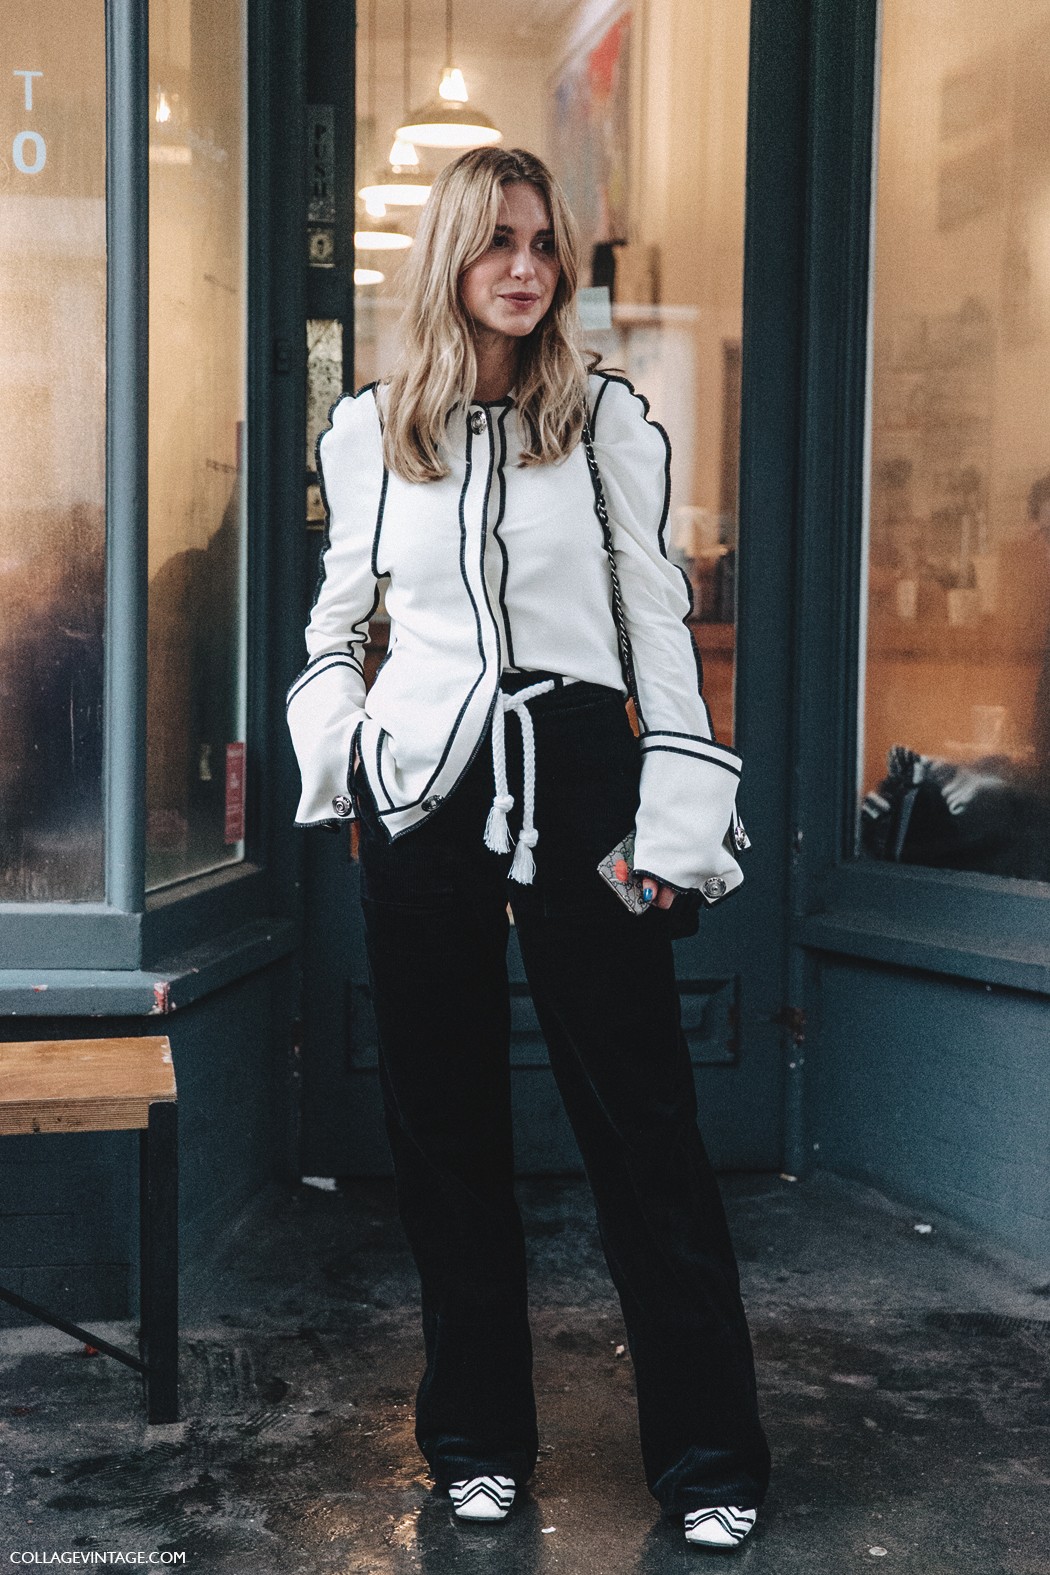 LFW-London_Fashion_Week_Fall_16-Street_Style-Collage_Vintage-Pernille_Teisbaek-JW_Anderson-Black_And_White-Big_Sleeves-Chanel_Bag-7